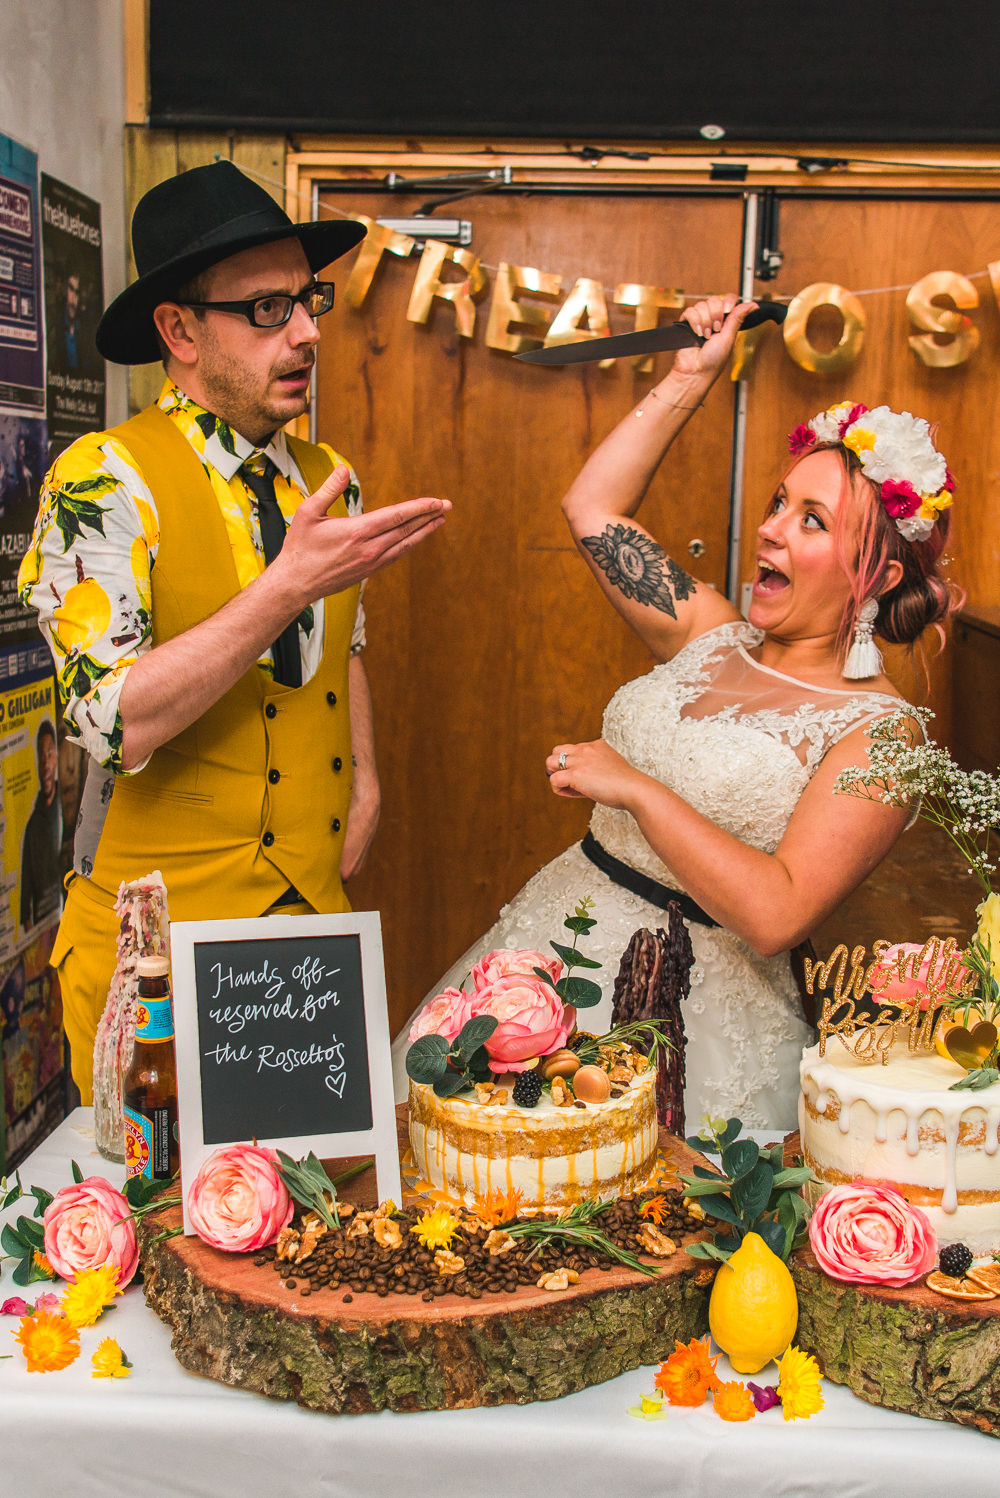 Bride Bridal Ballerina Length Dress Gown Tulle A Line Belt Floral Flower Crown Mustard Three Piece Suit Waistcoat Groom Hat Lemon Shirt Cake Cutting Fruit Space Hull Warehouse Wedding M&G Photographic